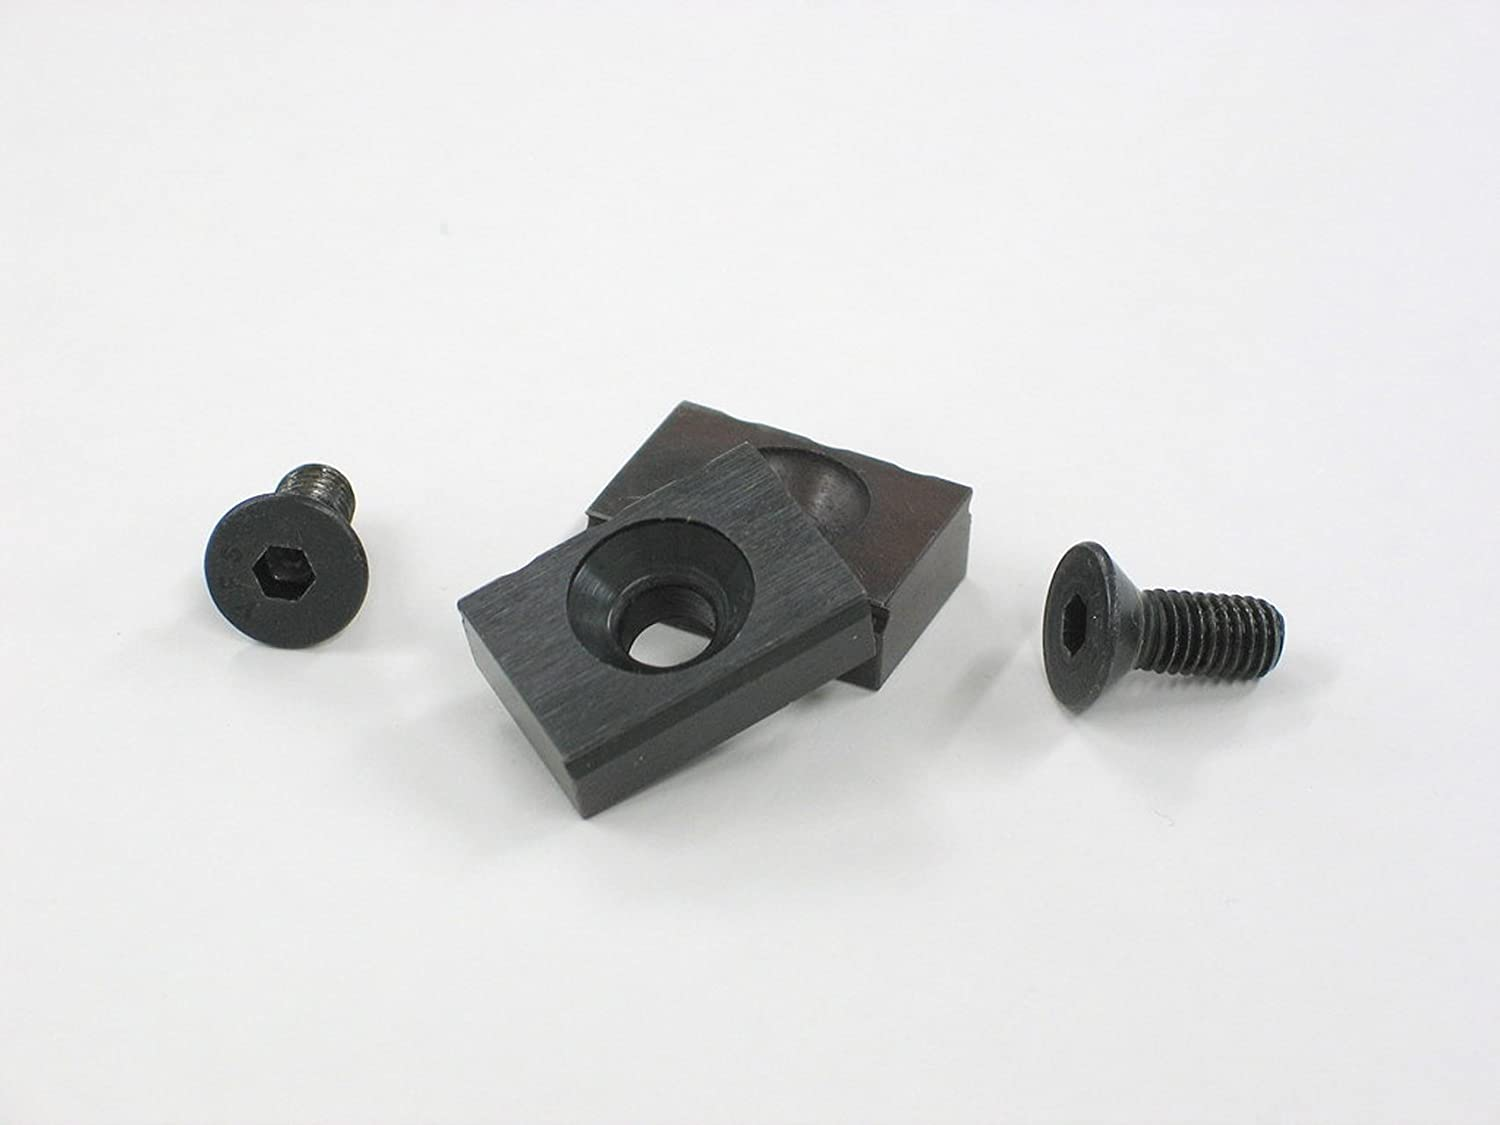 1//2in Mitee-Bite Products Vise Jaw Grips M5 Screw PK2-33050